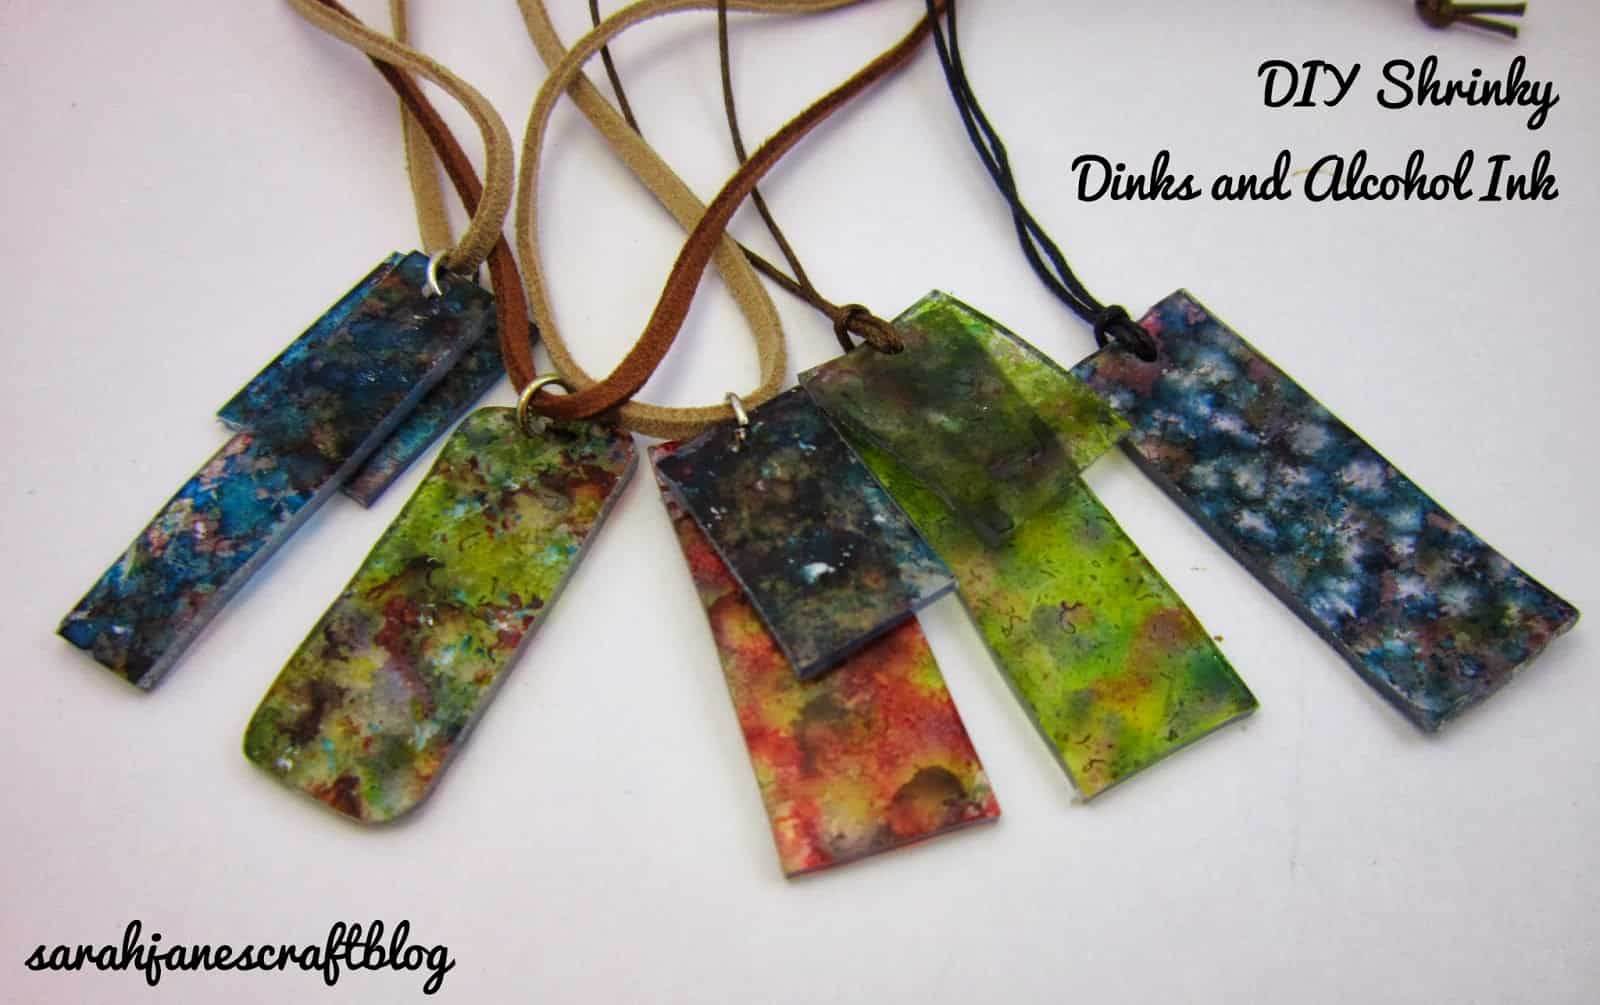 Shrinky dinks and alcohol ink pendants